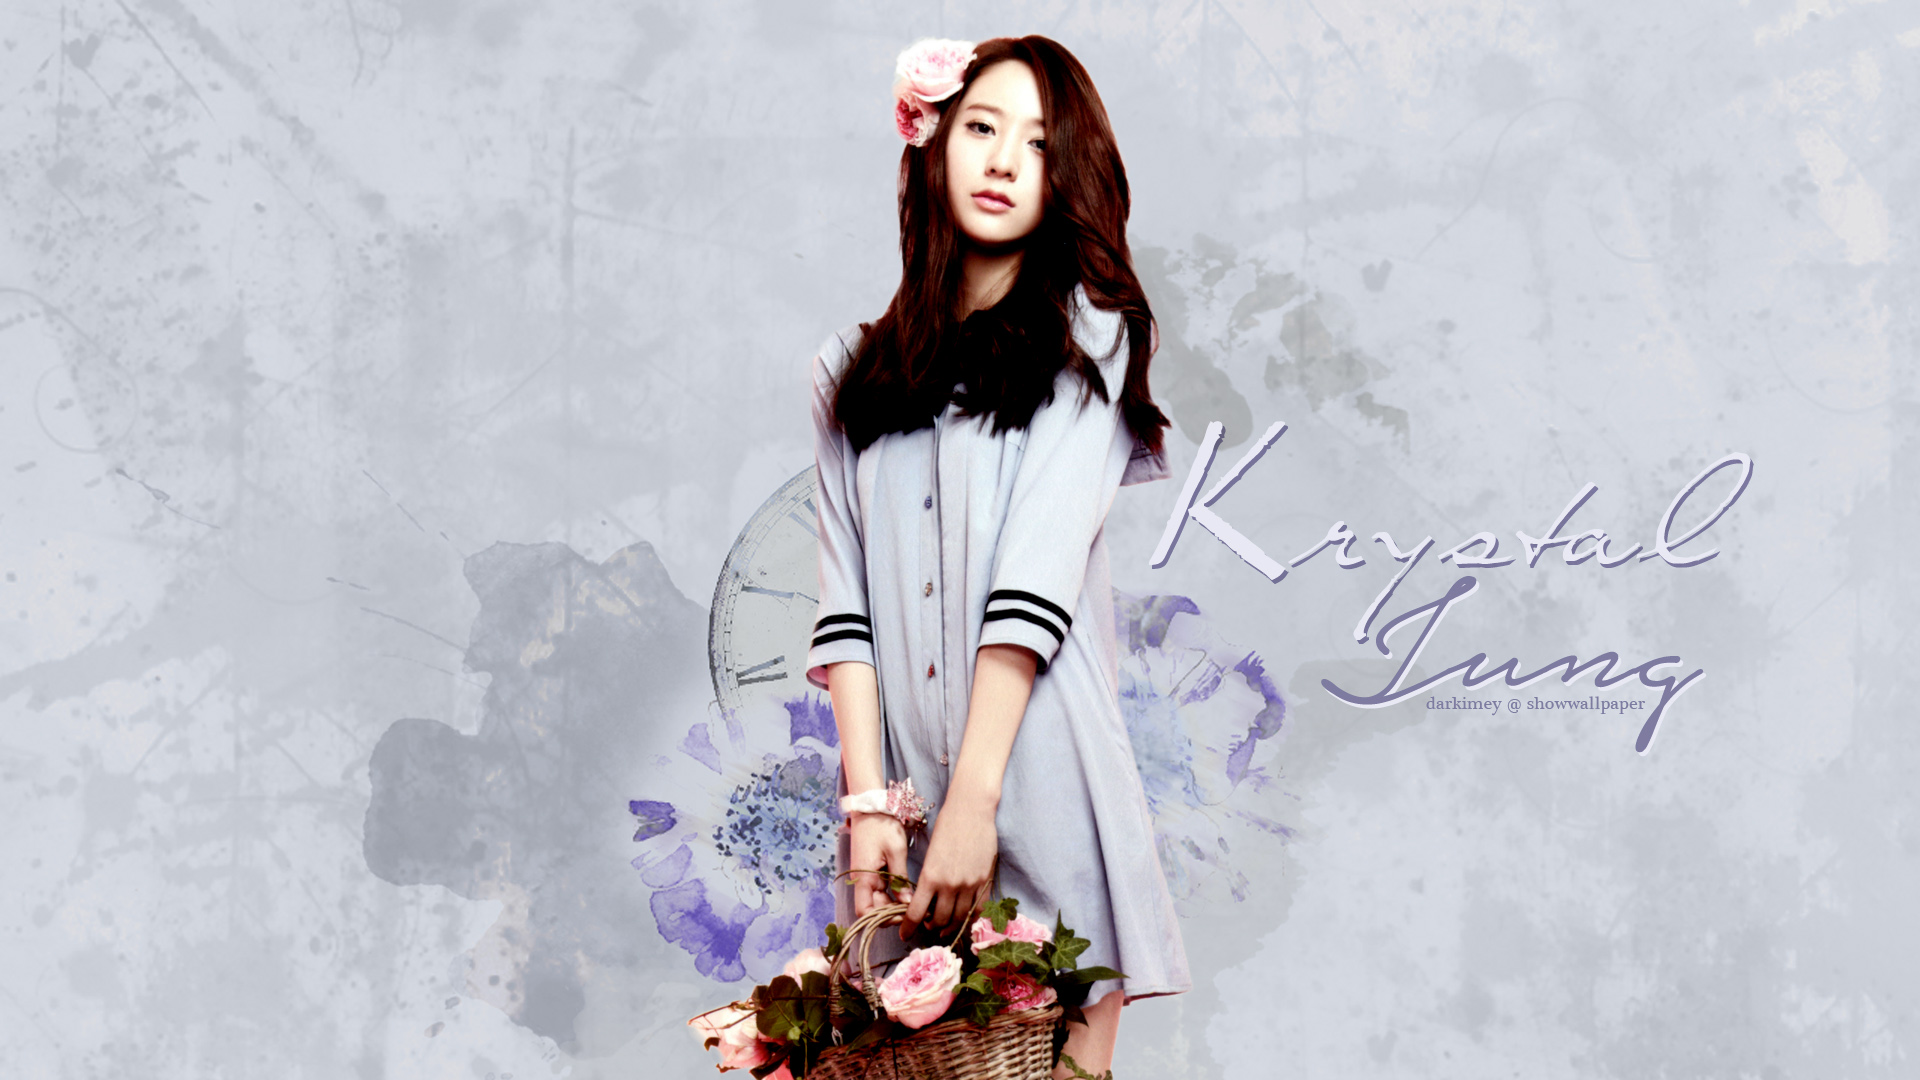 fx krystal full hd wallpaper and background image